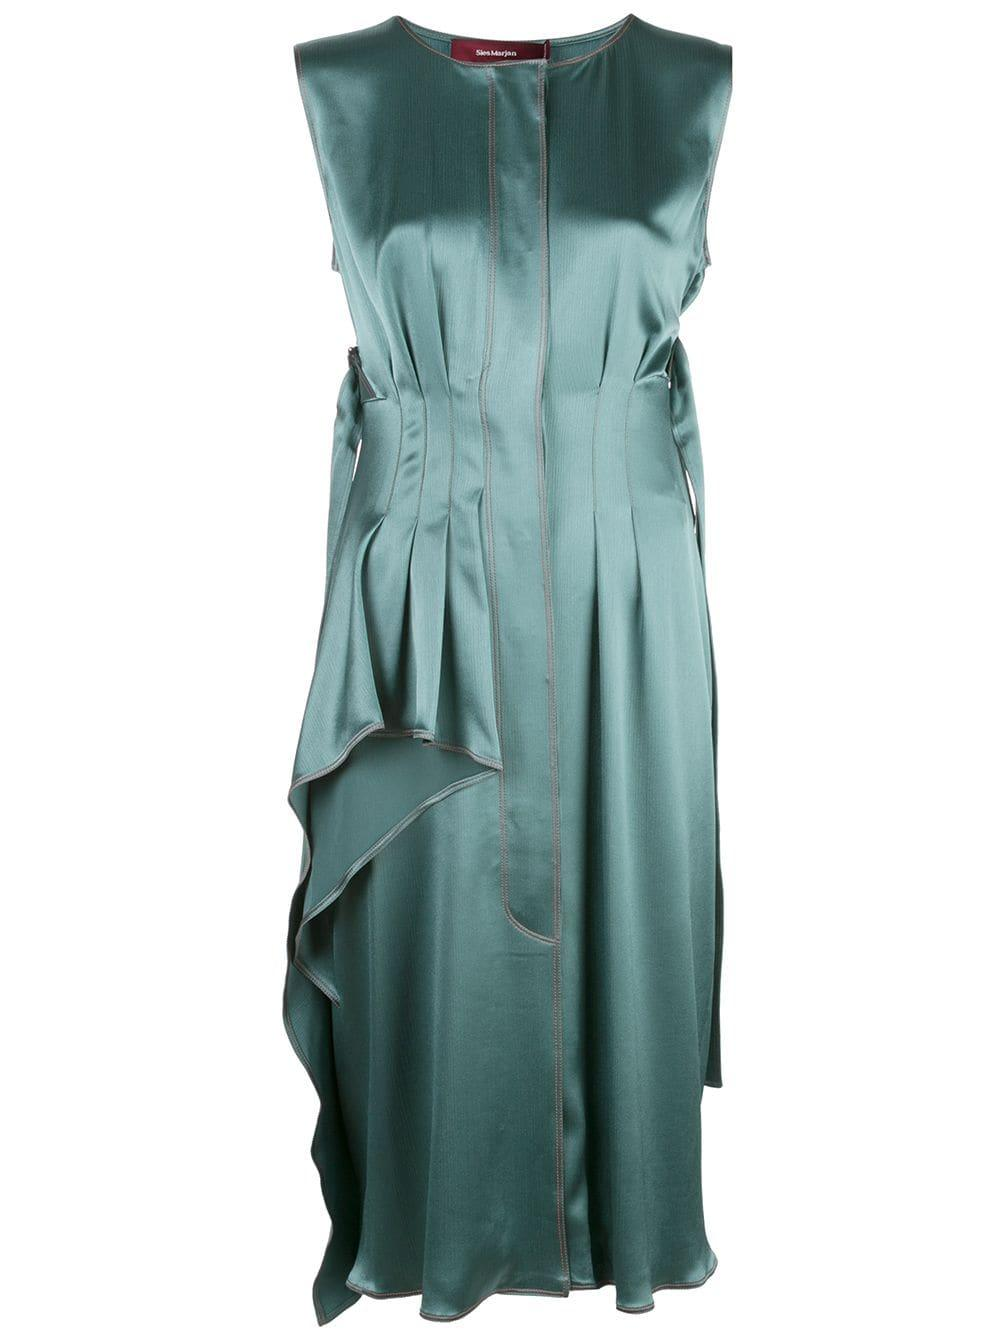 Ginger Crinkled Satin Sleeveless Dress Item # 13KS5196-SE40180